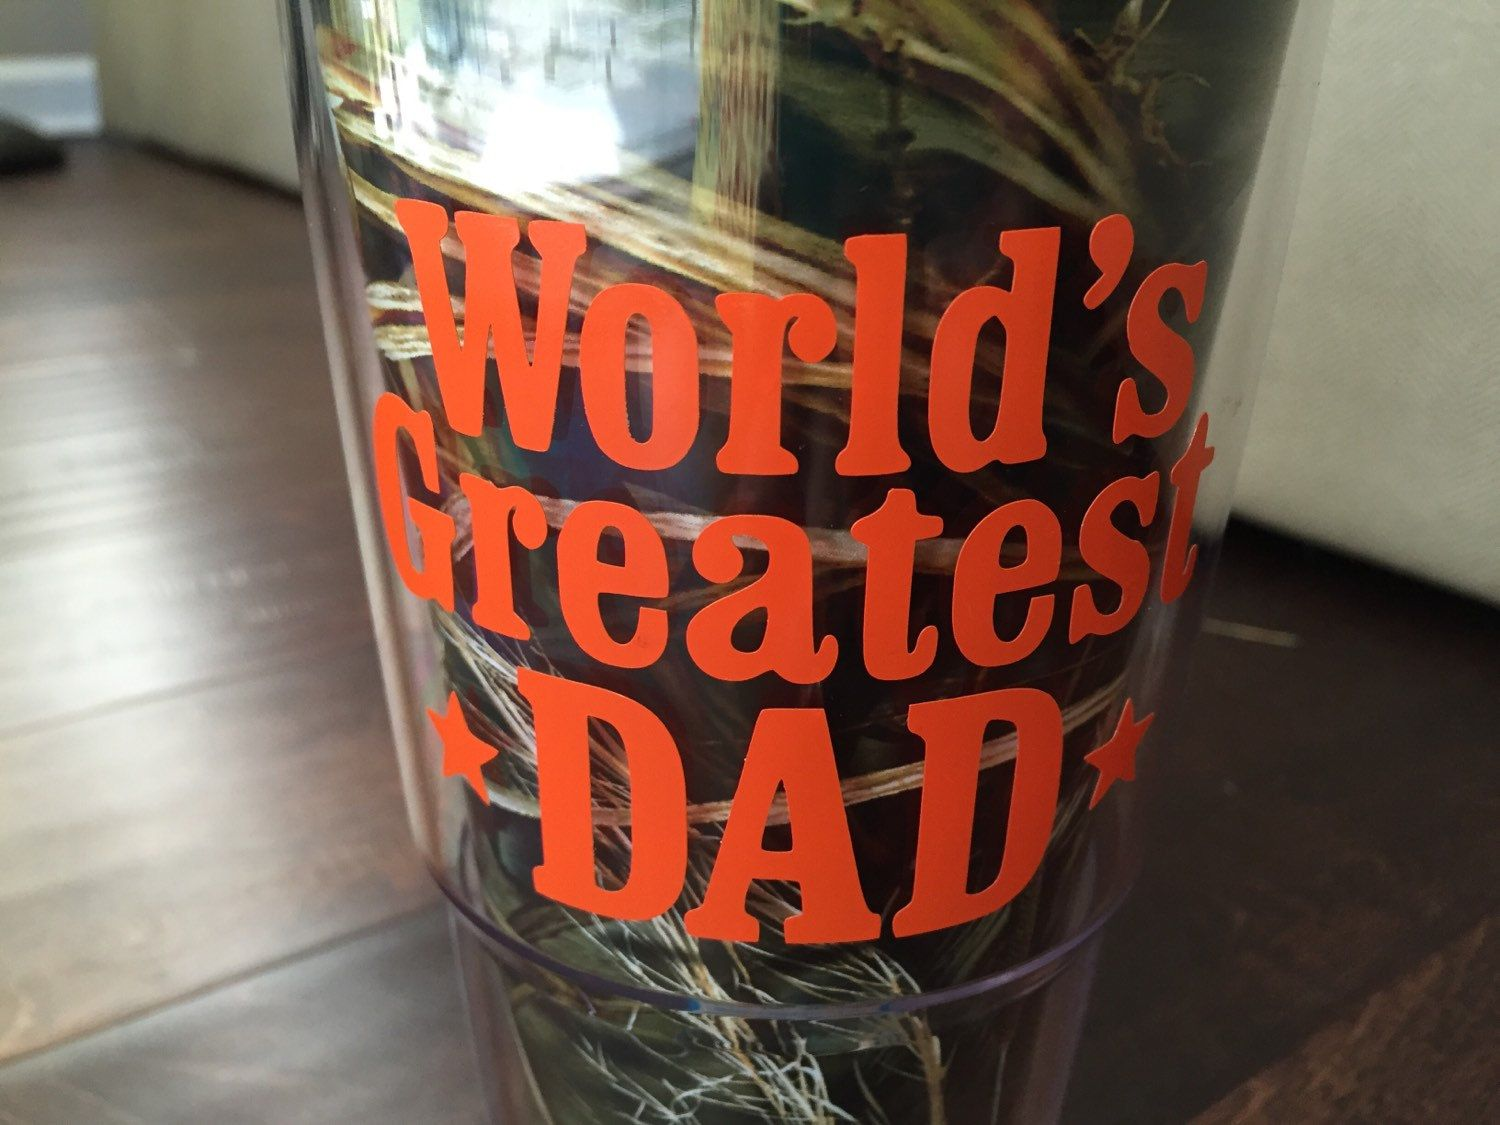 Worlds greatest dad decal for yeti cups coolers insulated cups cars toolbox men gift fathers day gifts by glittersandbows on etsy